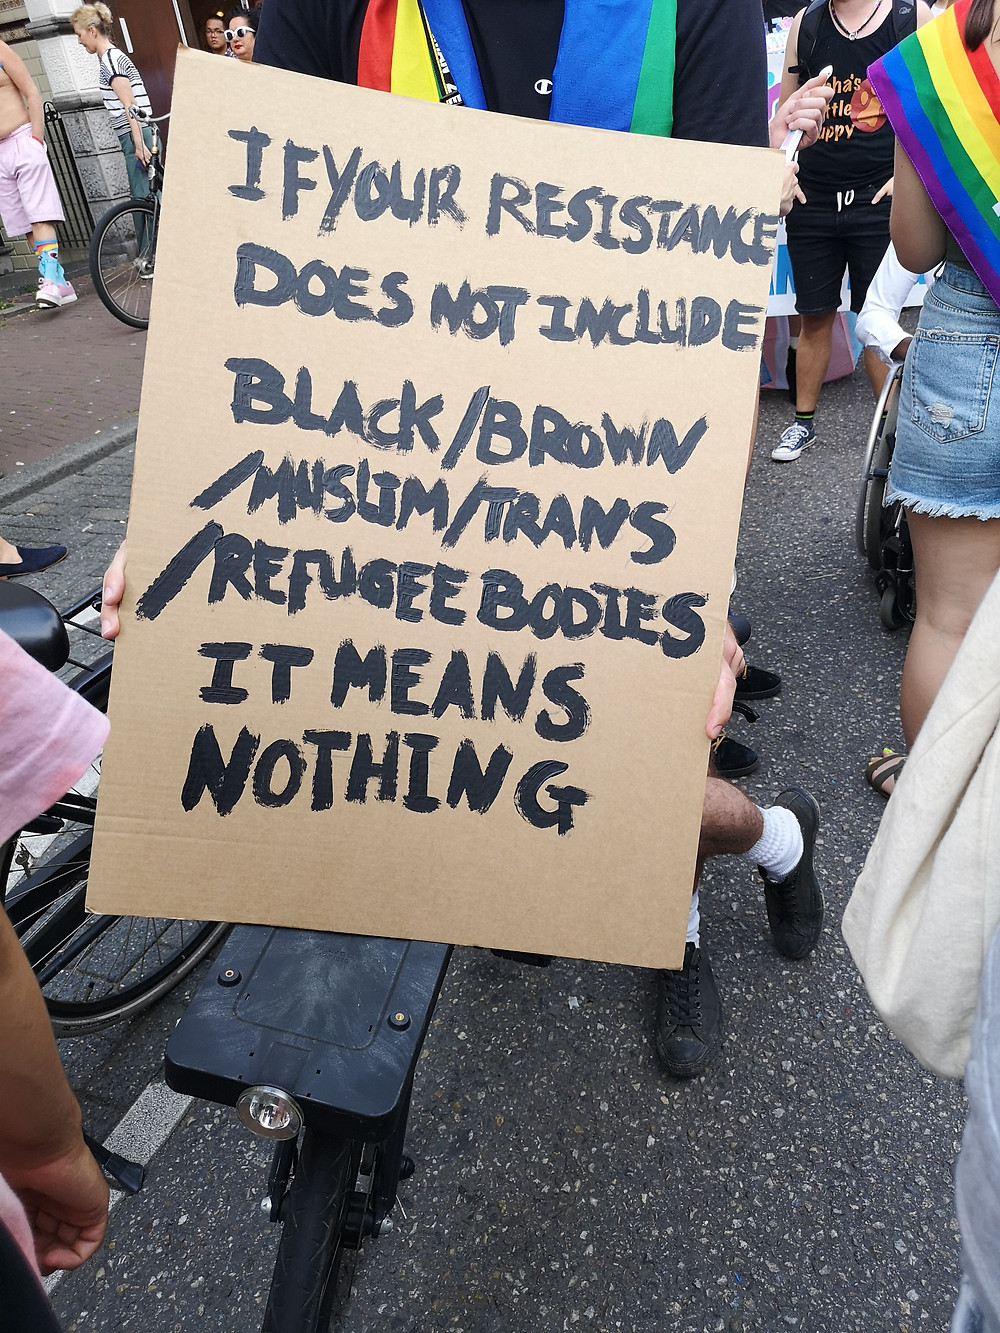 "Picture of a poster at a protest that reads ""if your resistance does not include Black / Brown / muslim / trans / refugee bodies it means nothing"